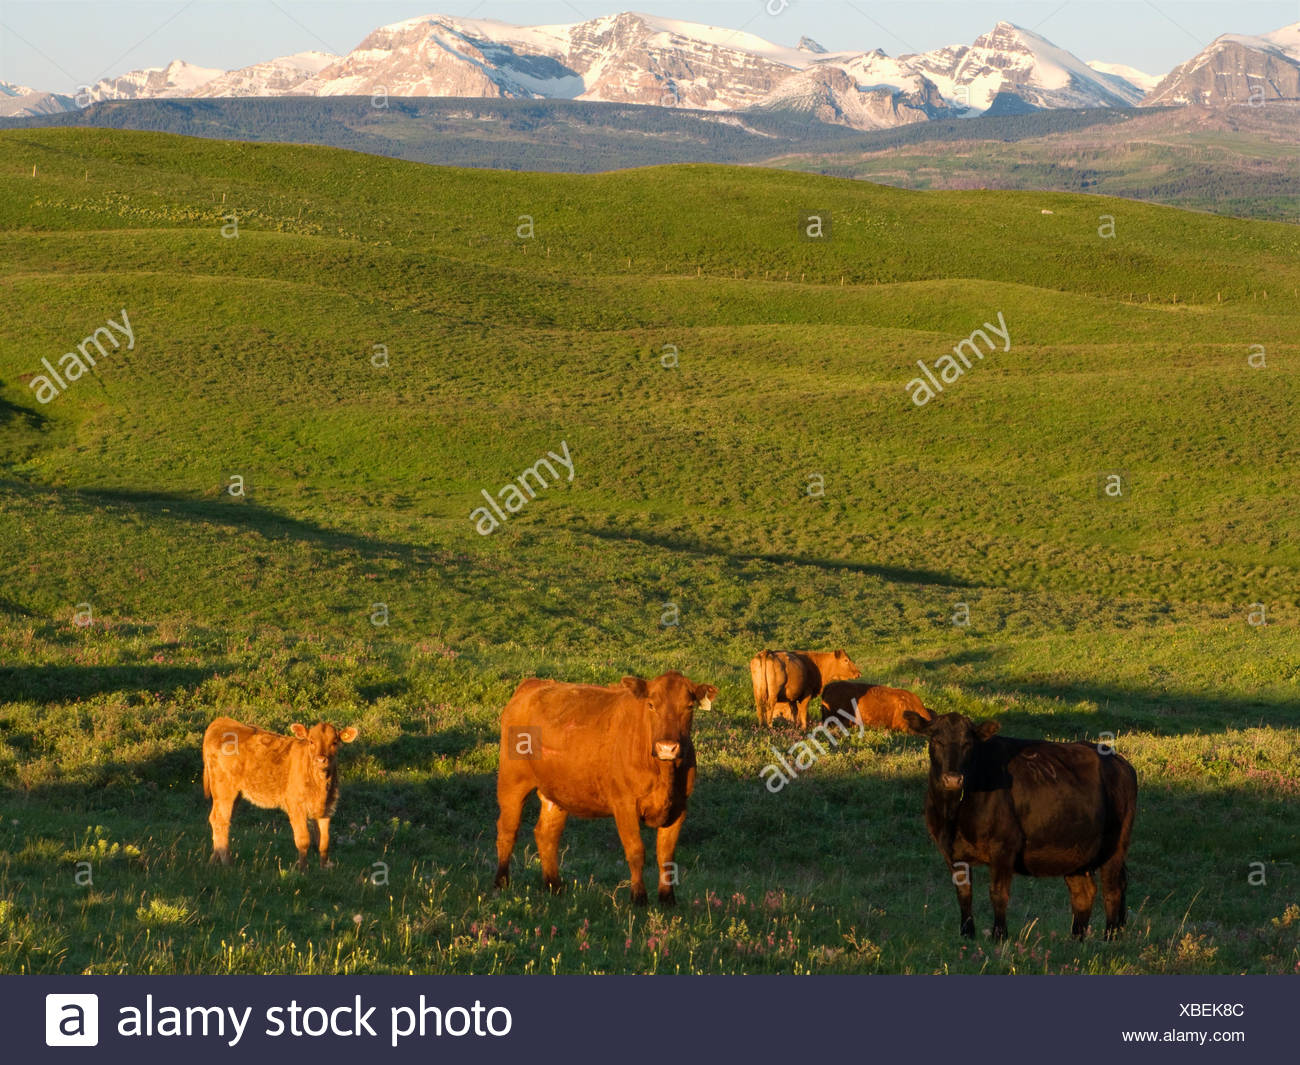 Red and black Angus cows and calves gathered at a prairie water pothole at sunrise on a foothill pasture / Alberta, Canada. - Stock Image